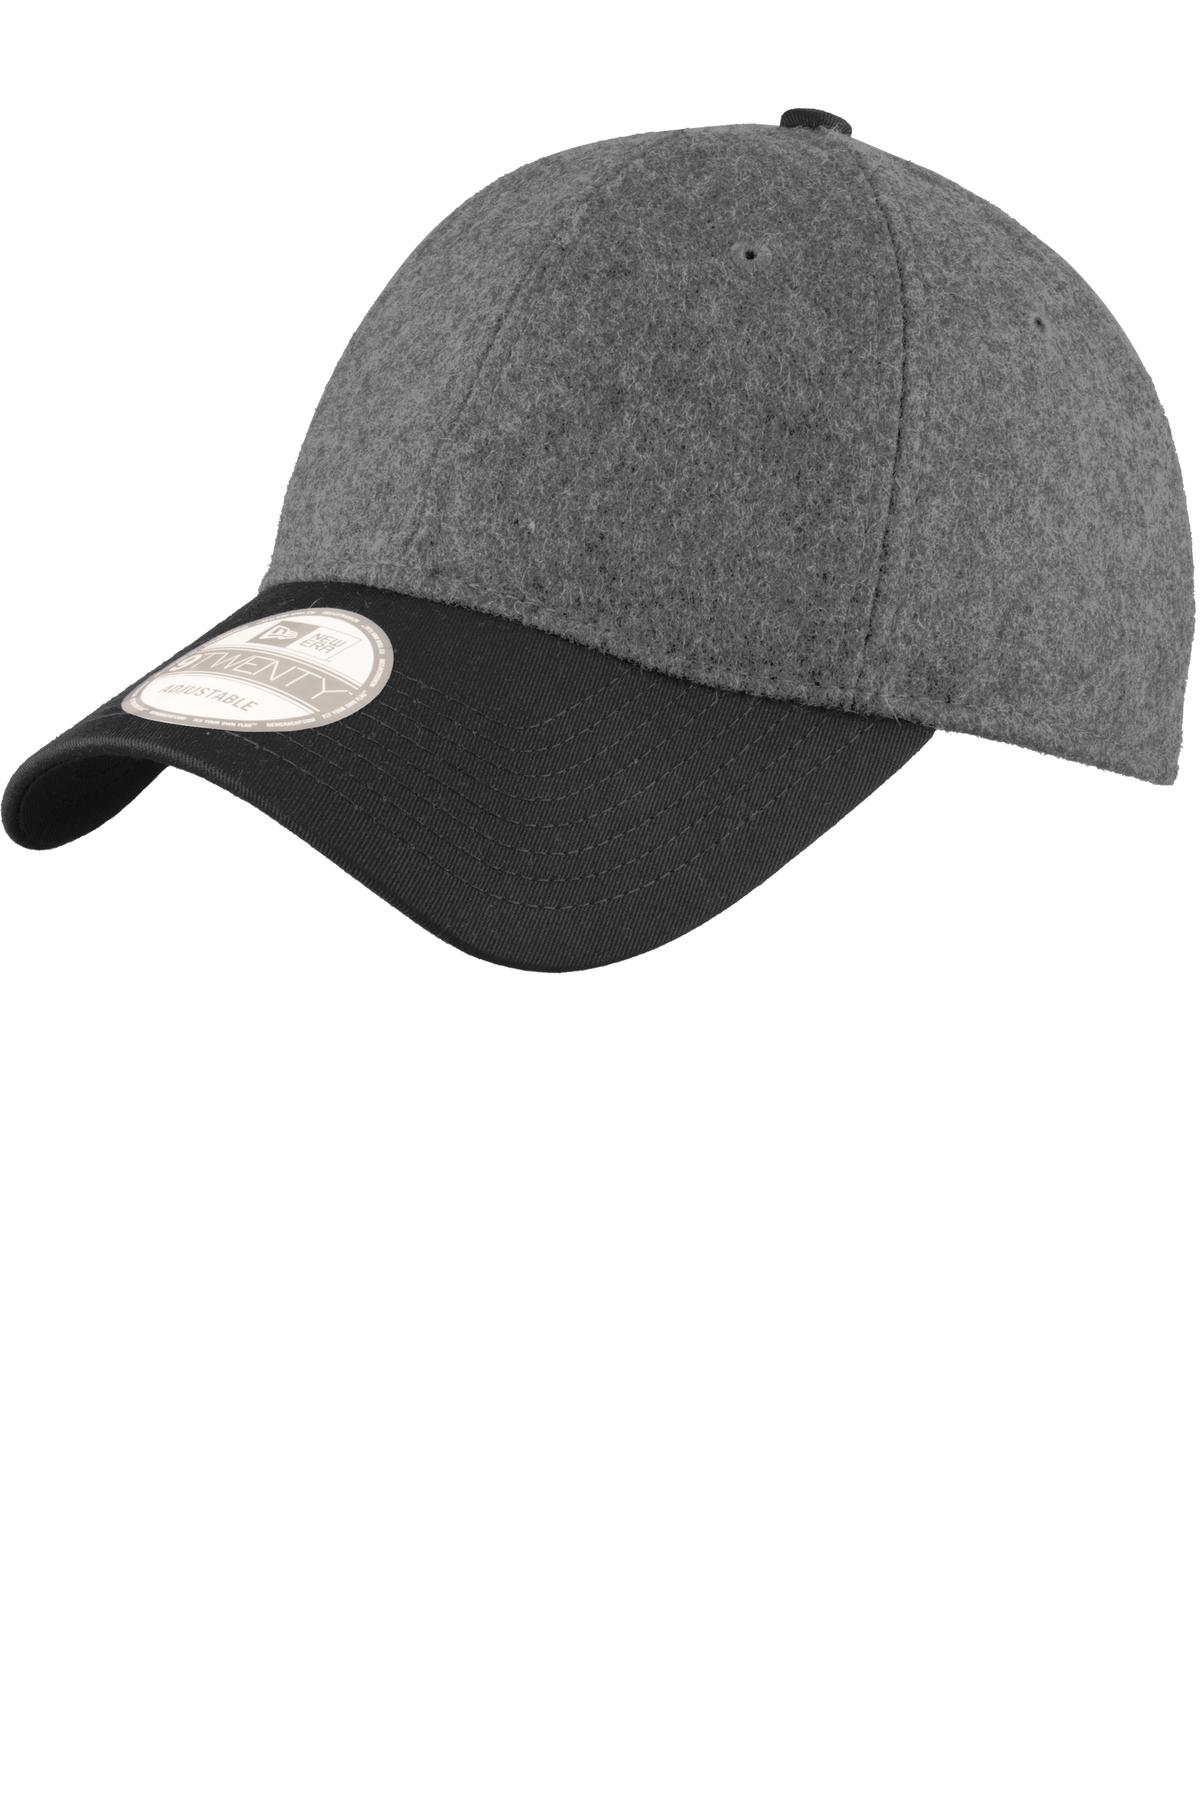 click to view Graphite Heather/ Black